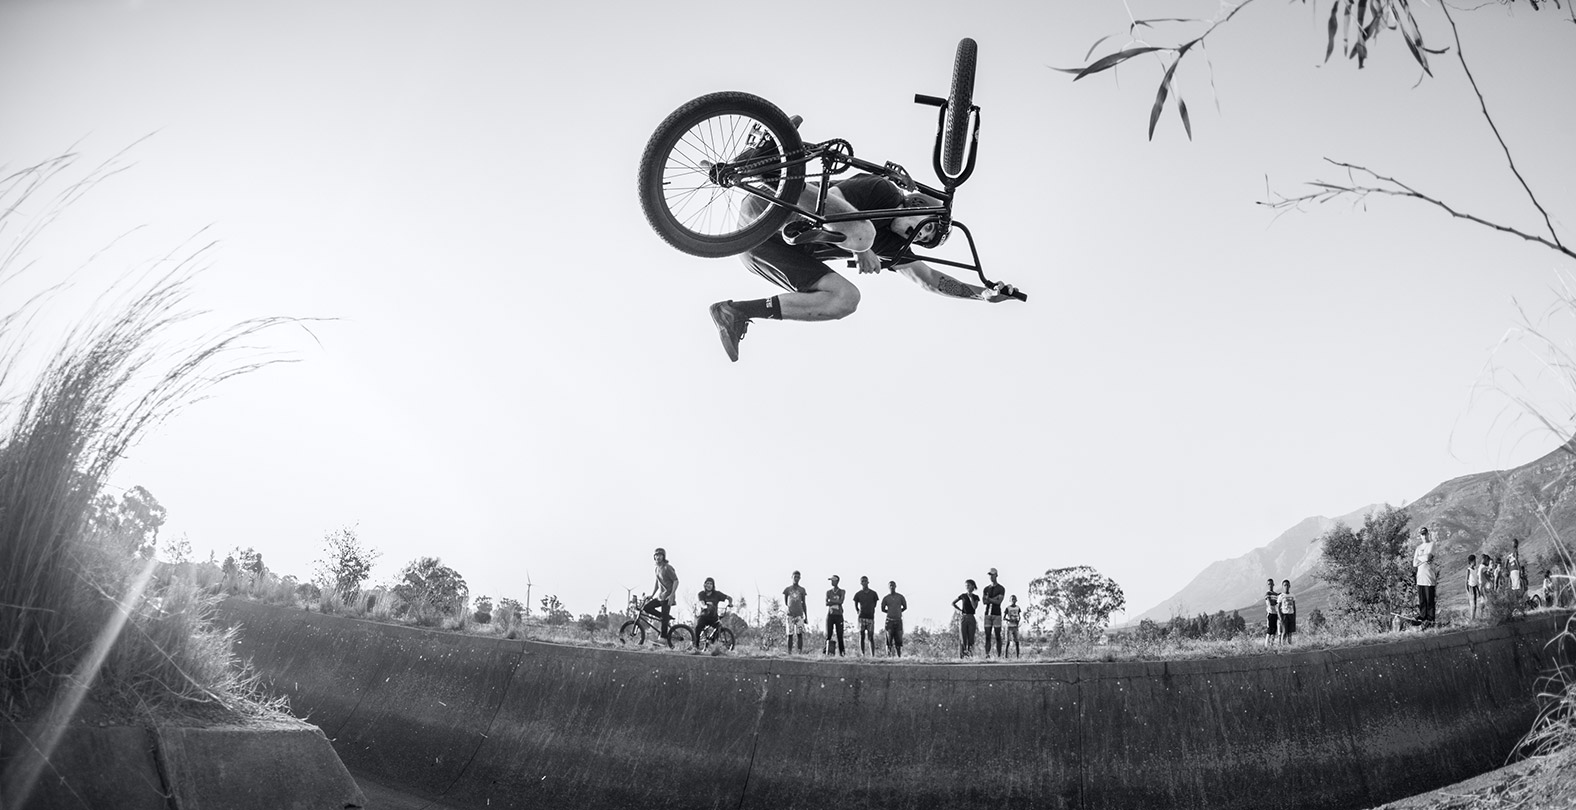 Jason Watts riding BMX in South Africa